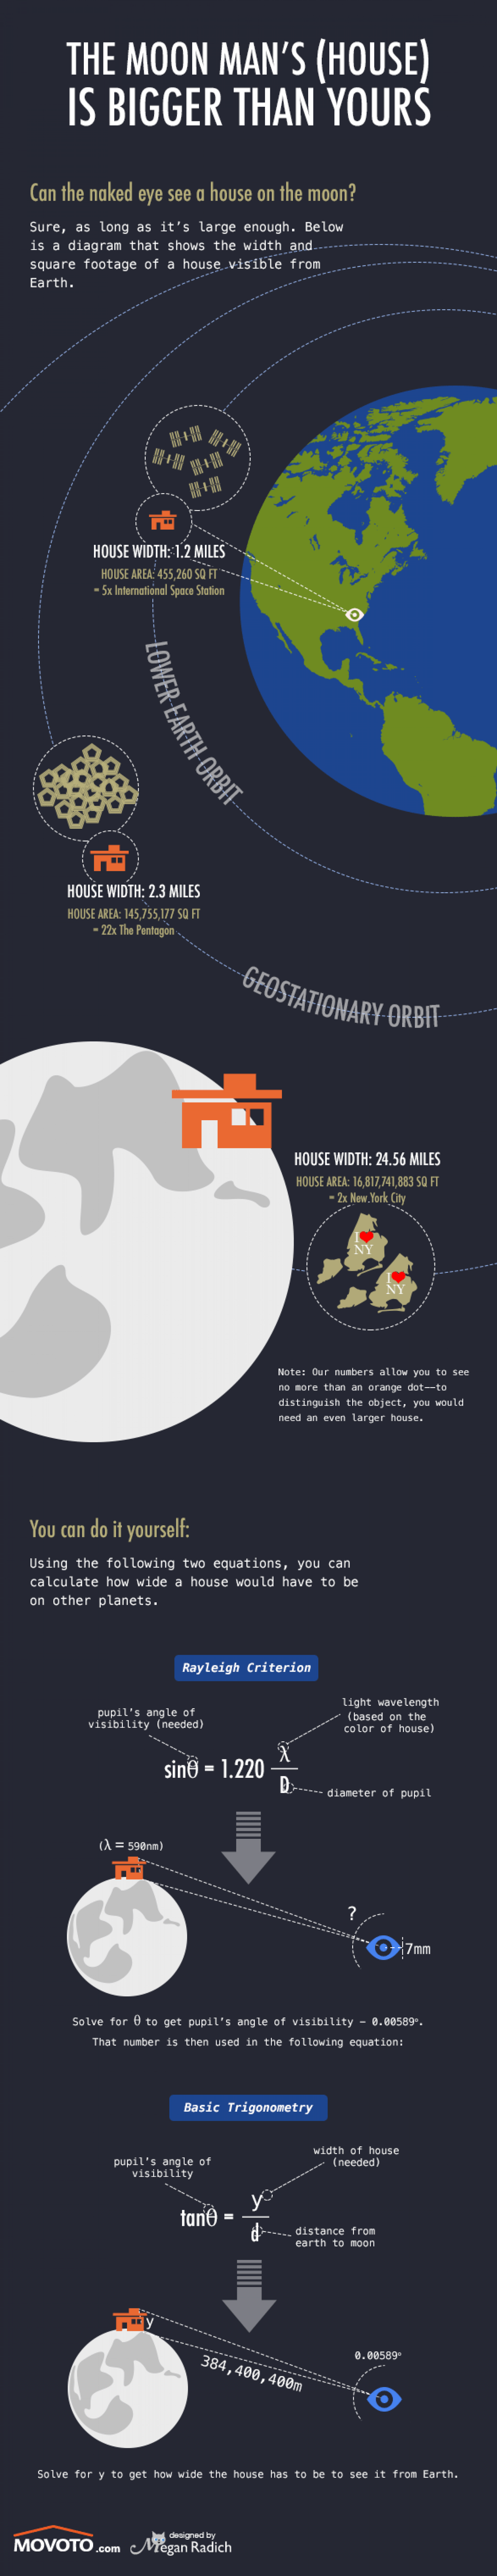 How to See a House on the Moon Infographic